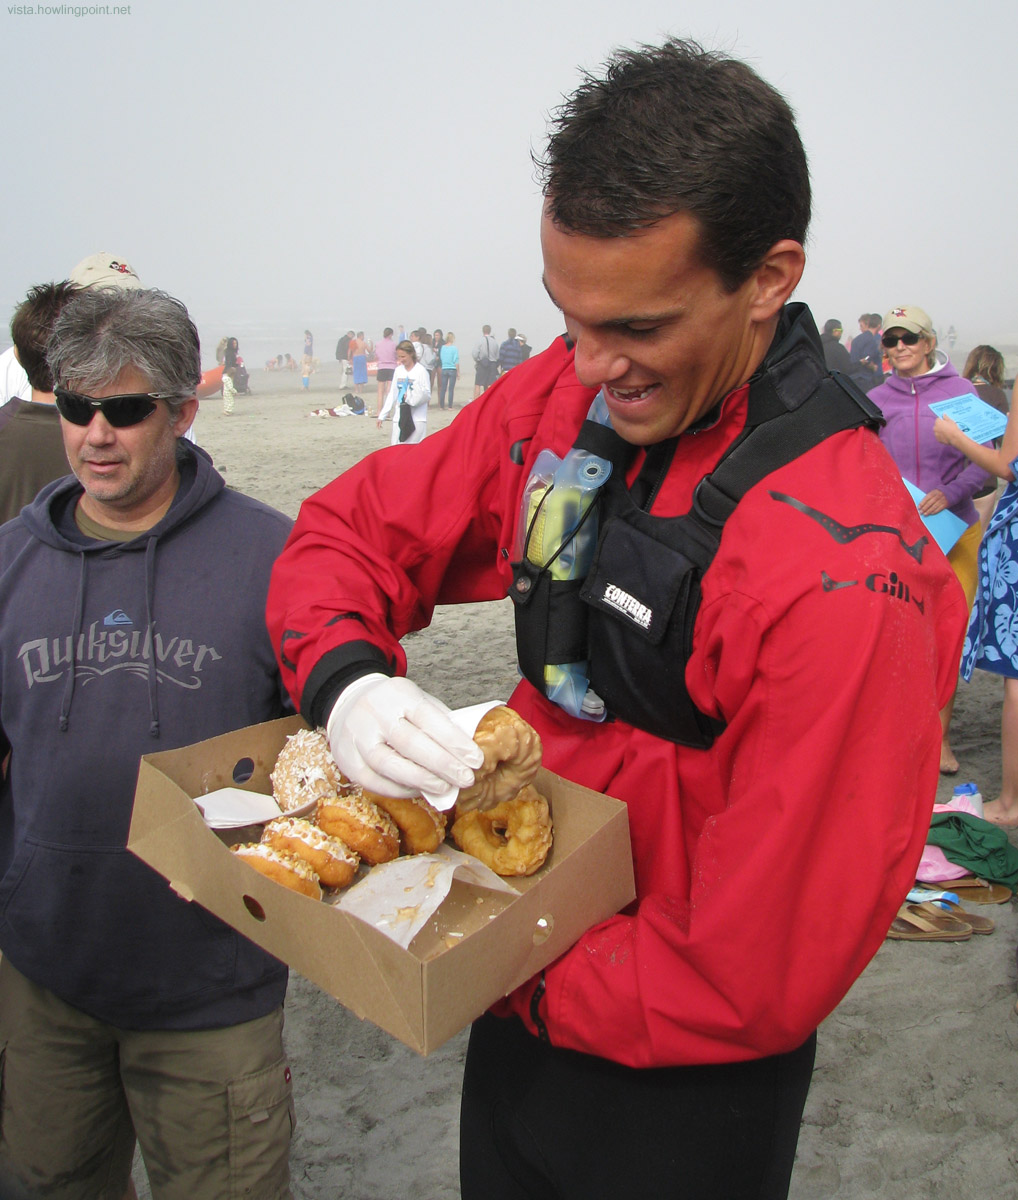 Lifeguard Serving Donuts: